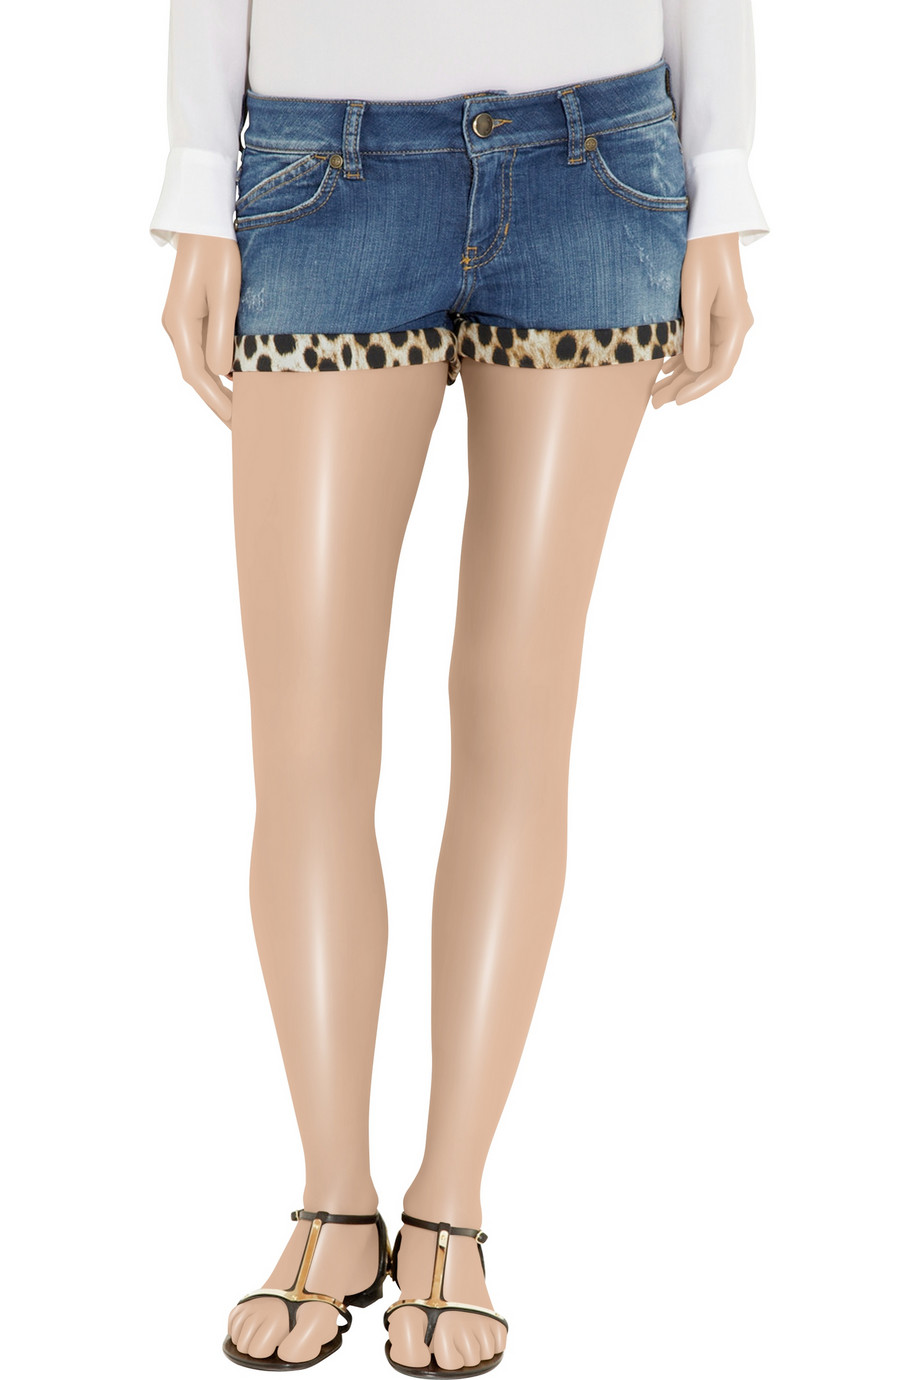 Lyst - Just cavalli Leopard-print Stretch-denim Shorts in Blue